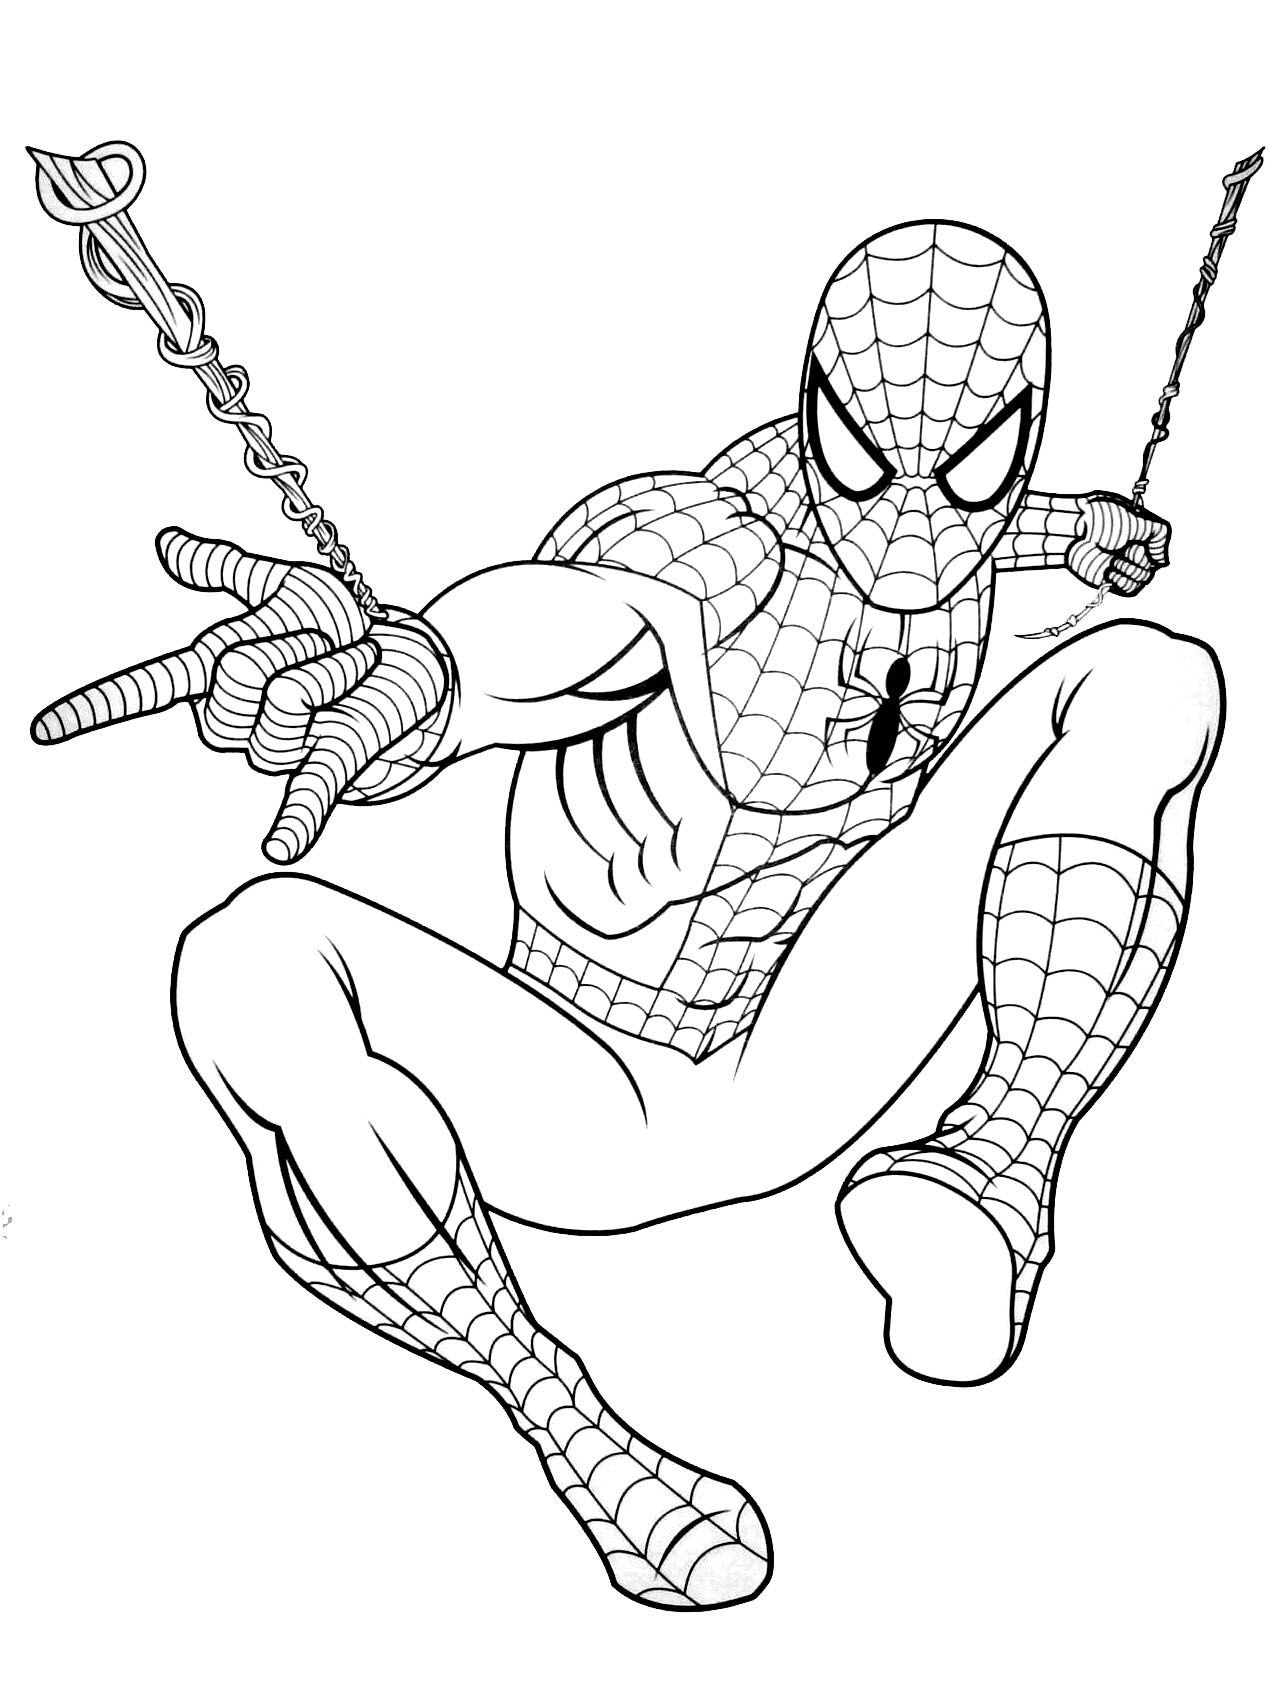 20 dessins de coloriage spiderman gratuit imprimer - Coloriage spiderman imprimer ...